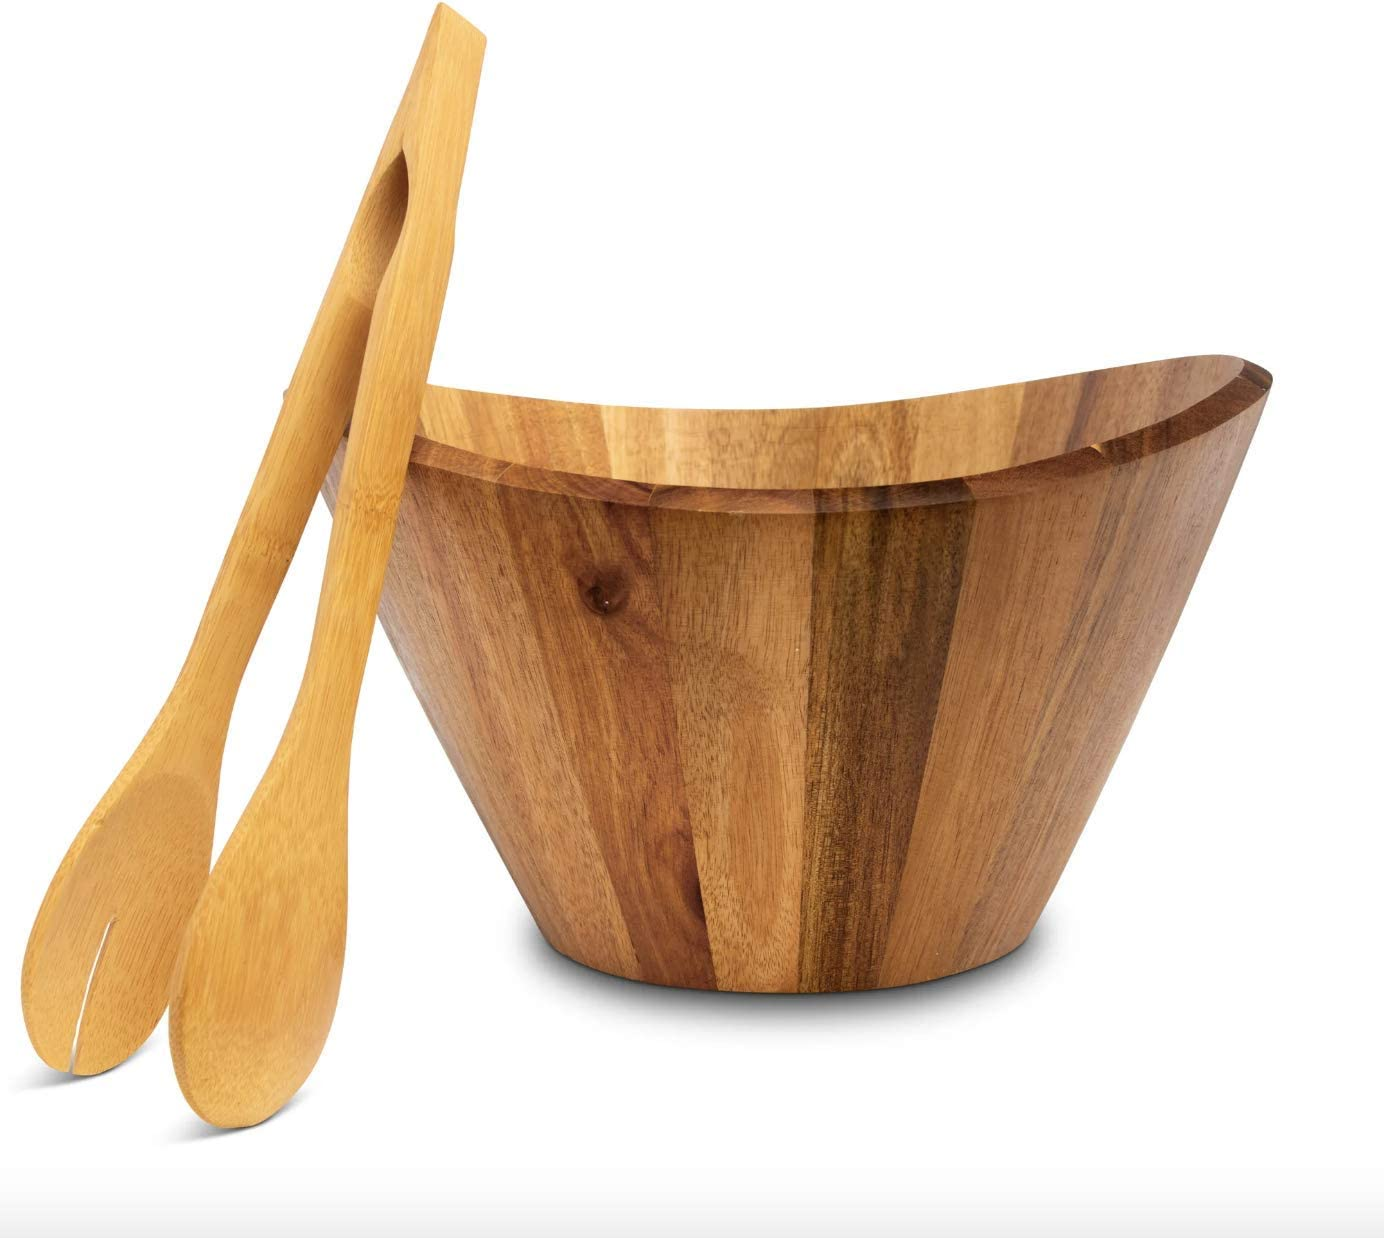 Stuart Smith Wooden Salad Bowl - Large All Natural Acacia Wood Salad Bowl Serving Set with Tongs for Fruits or Salads